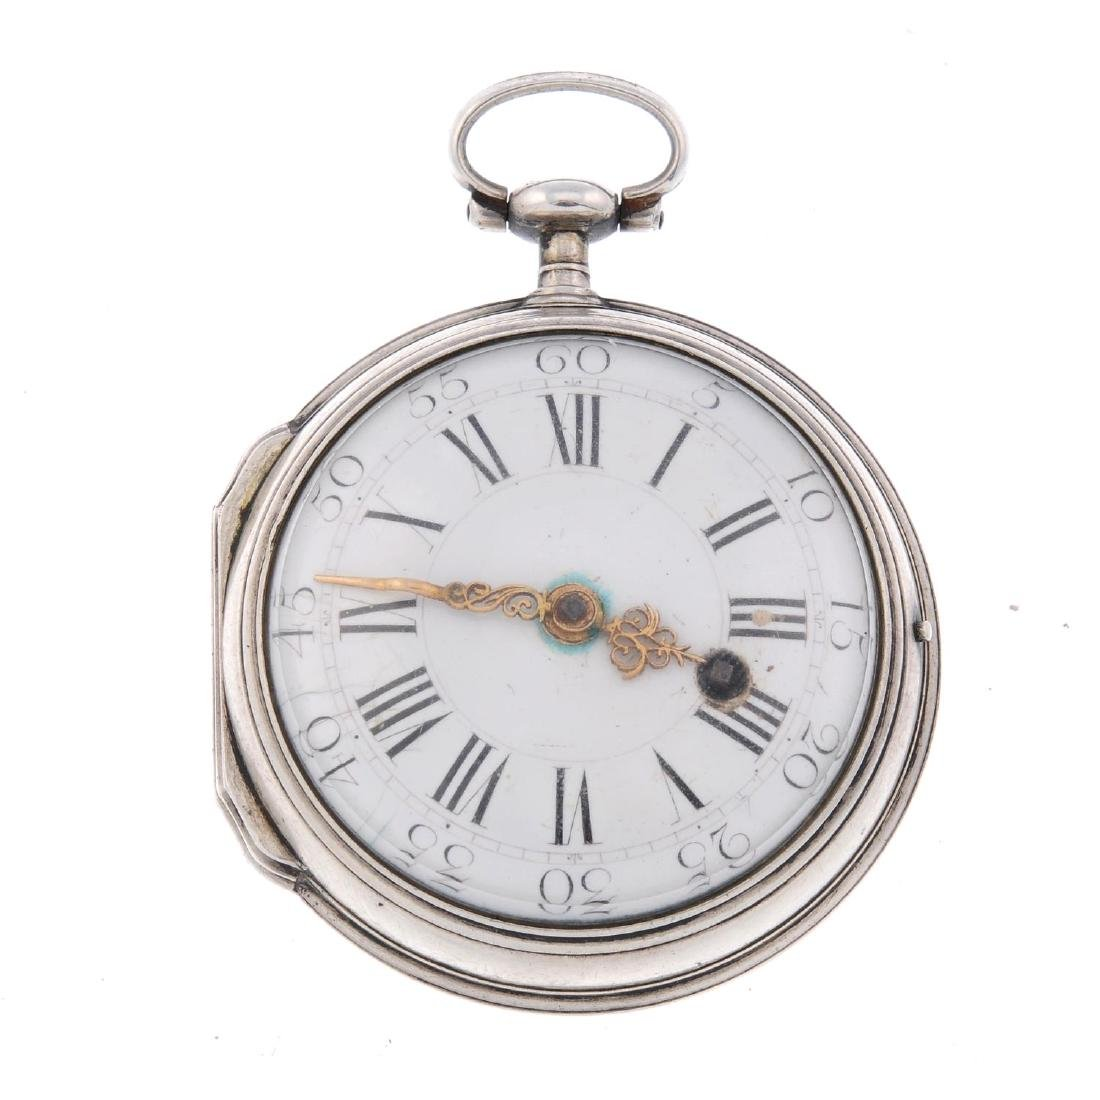 An open face pocket watch by Preudhome and Raymond.